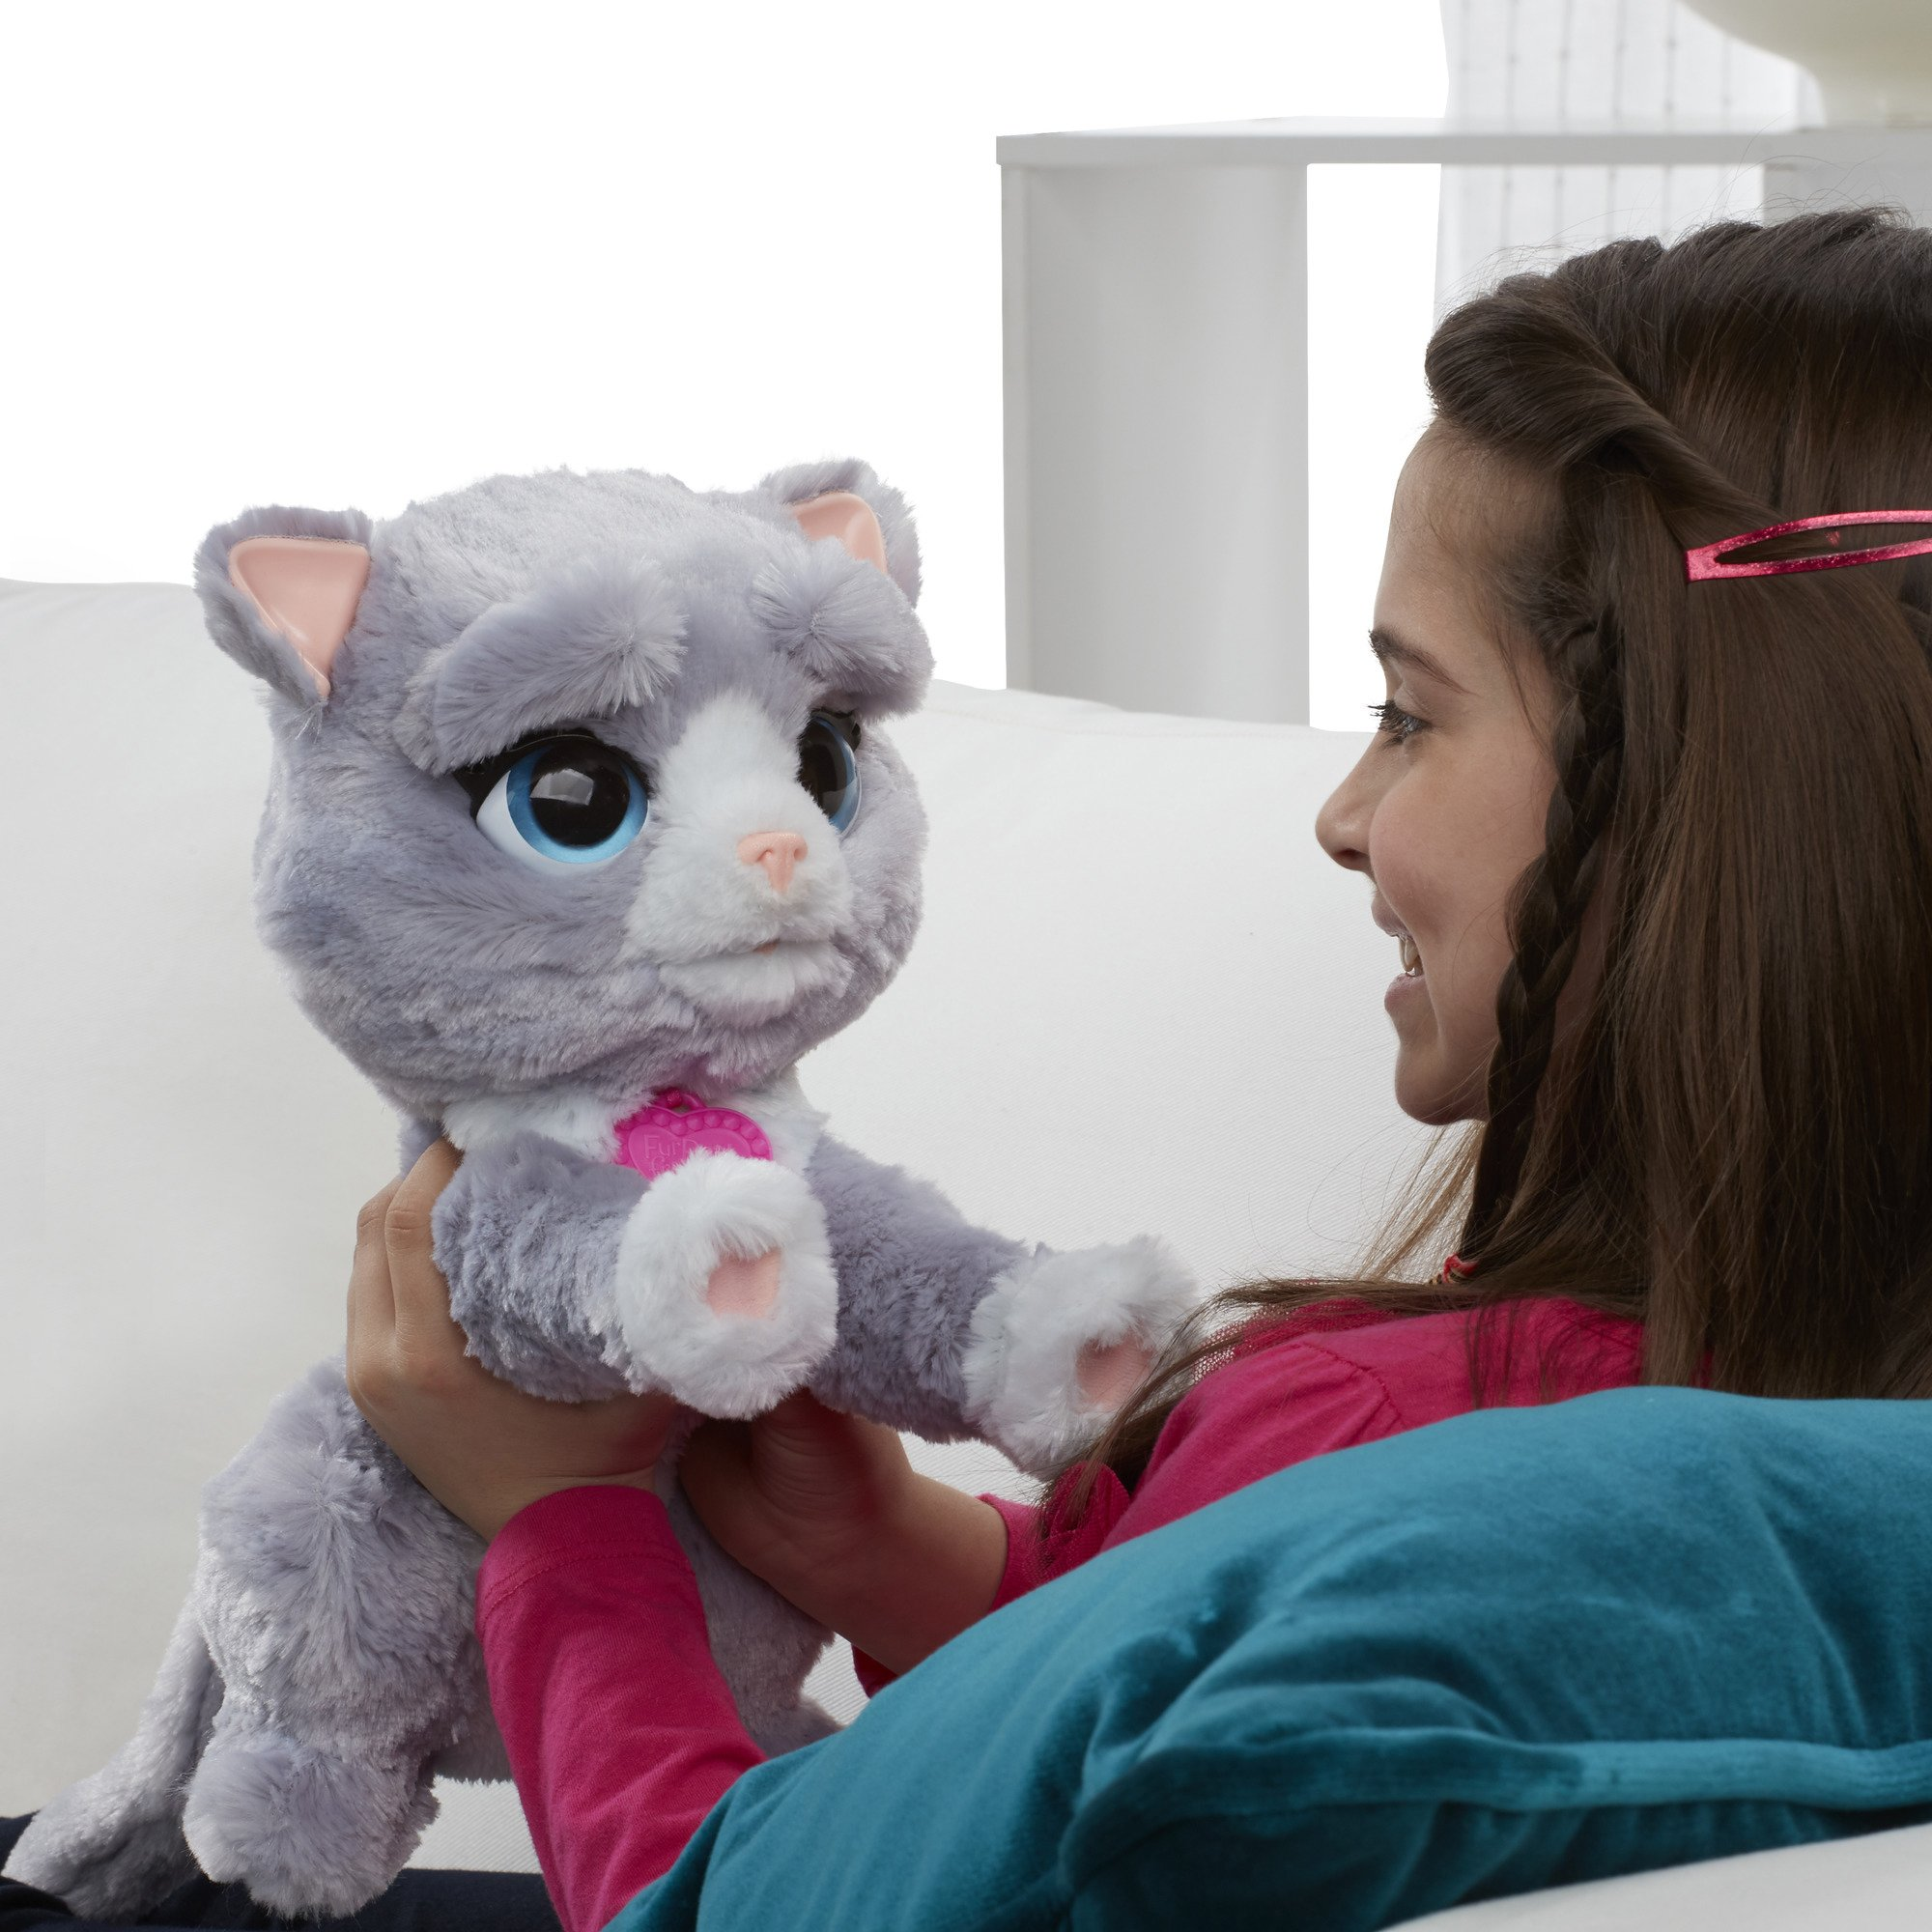 FurReal B5936AF1 Bootsie Interactive Plush Kitty Toy, Ages 4 & Up by FurReal (Image #7)